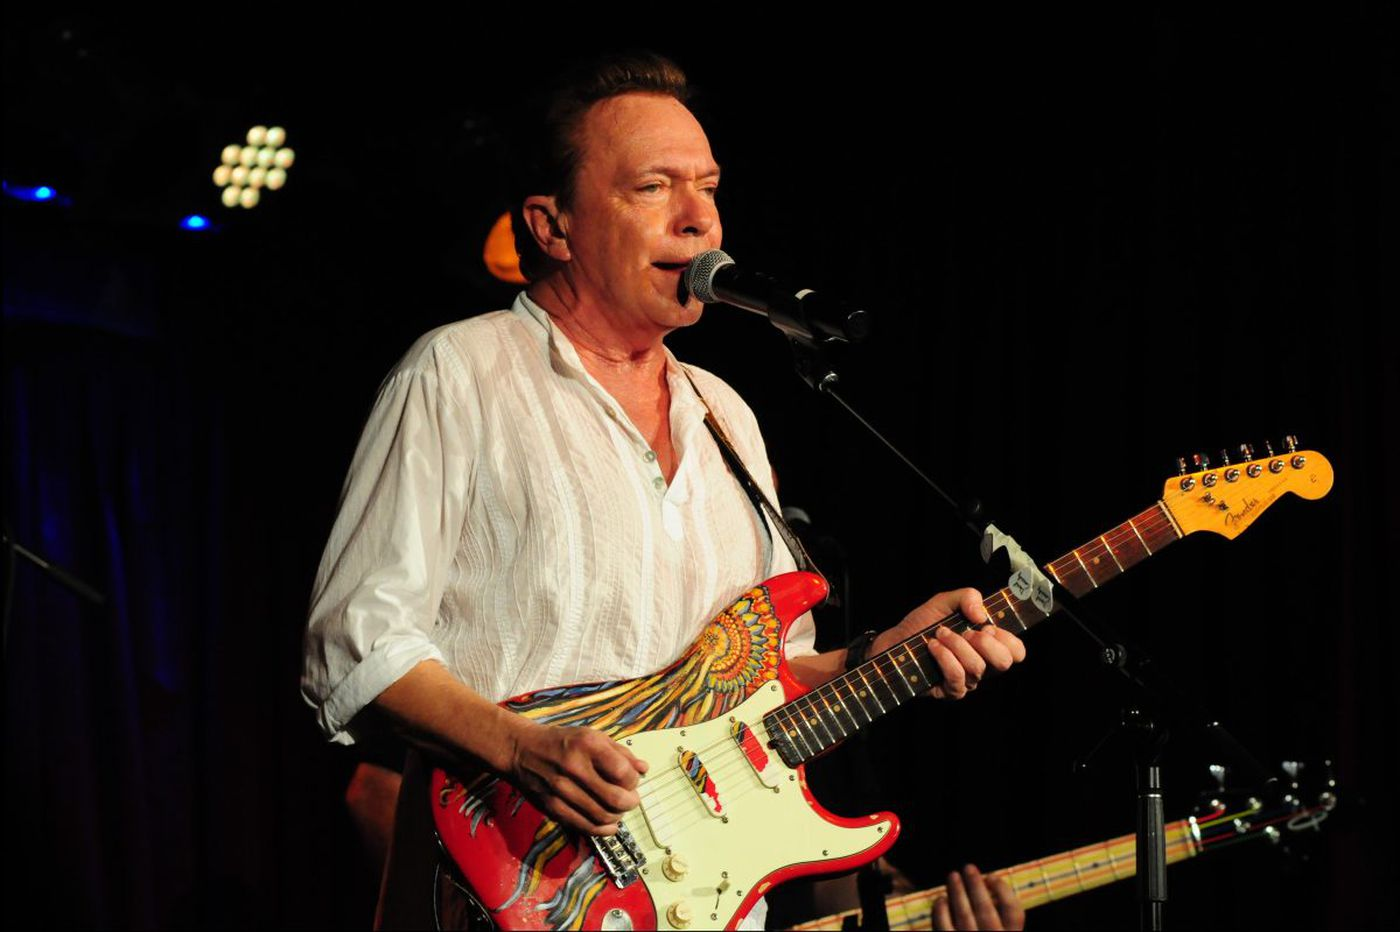 David Cassidy's death from liver failure may alert fellow boomers to their own risk